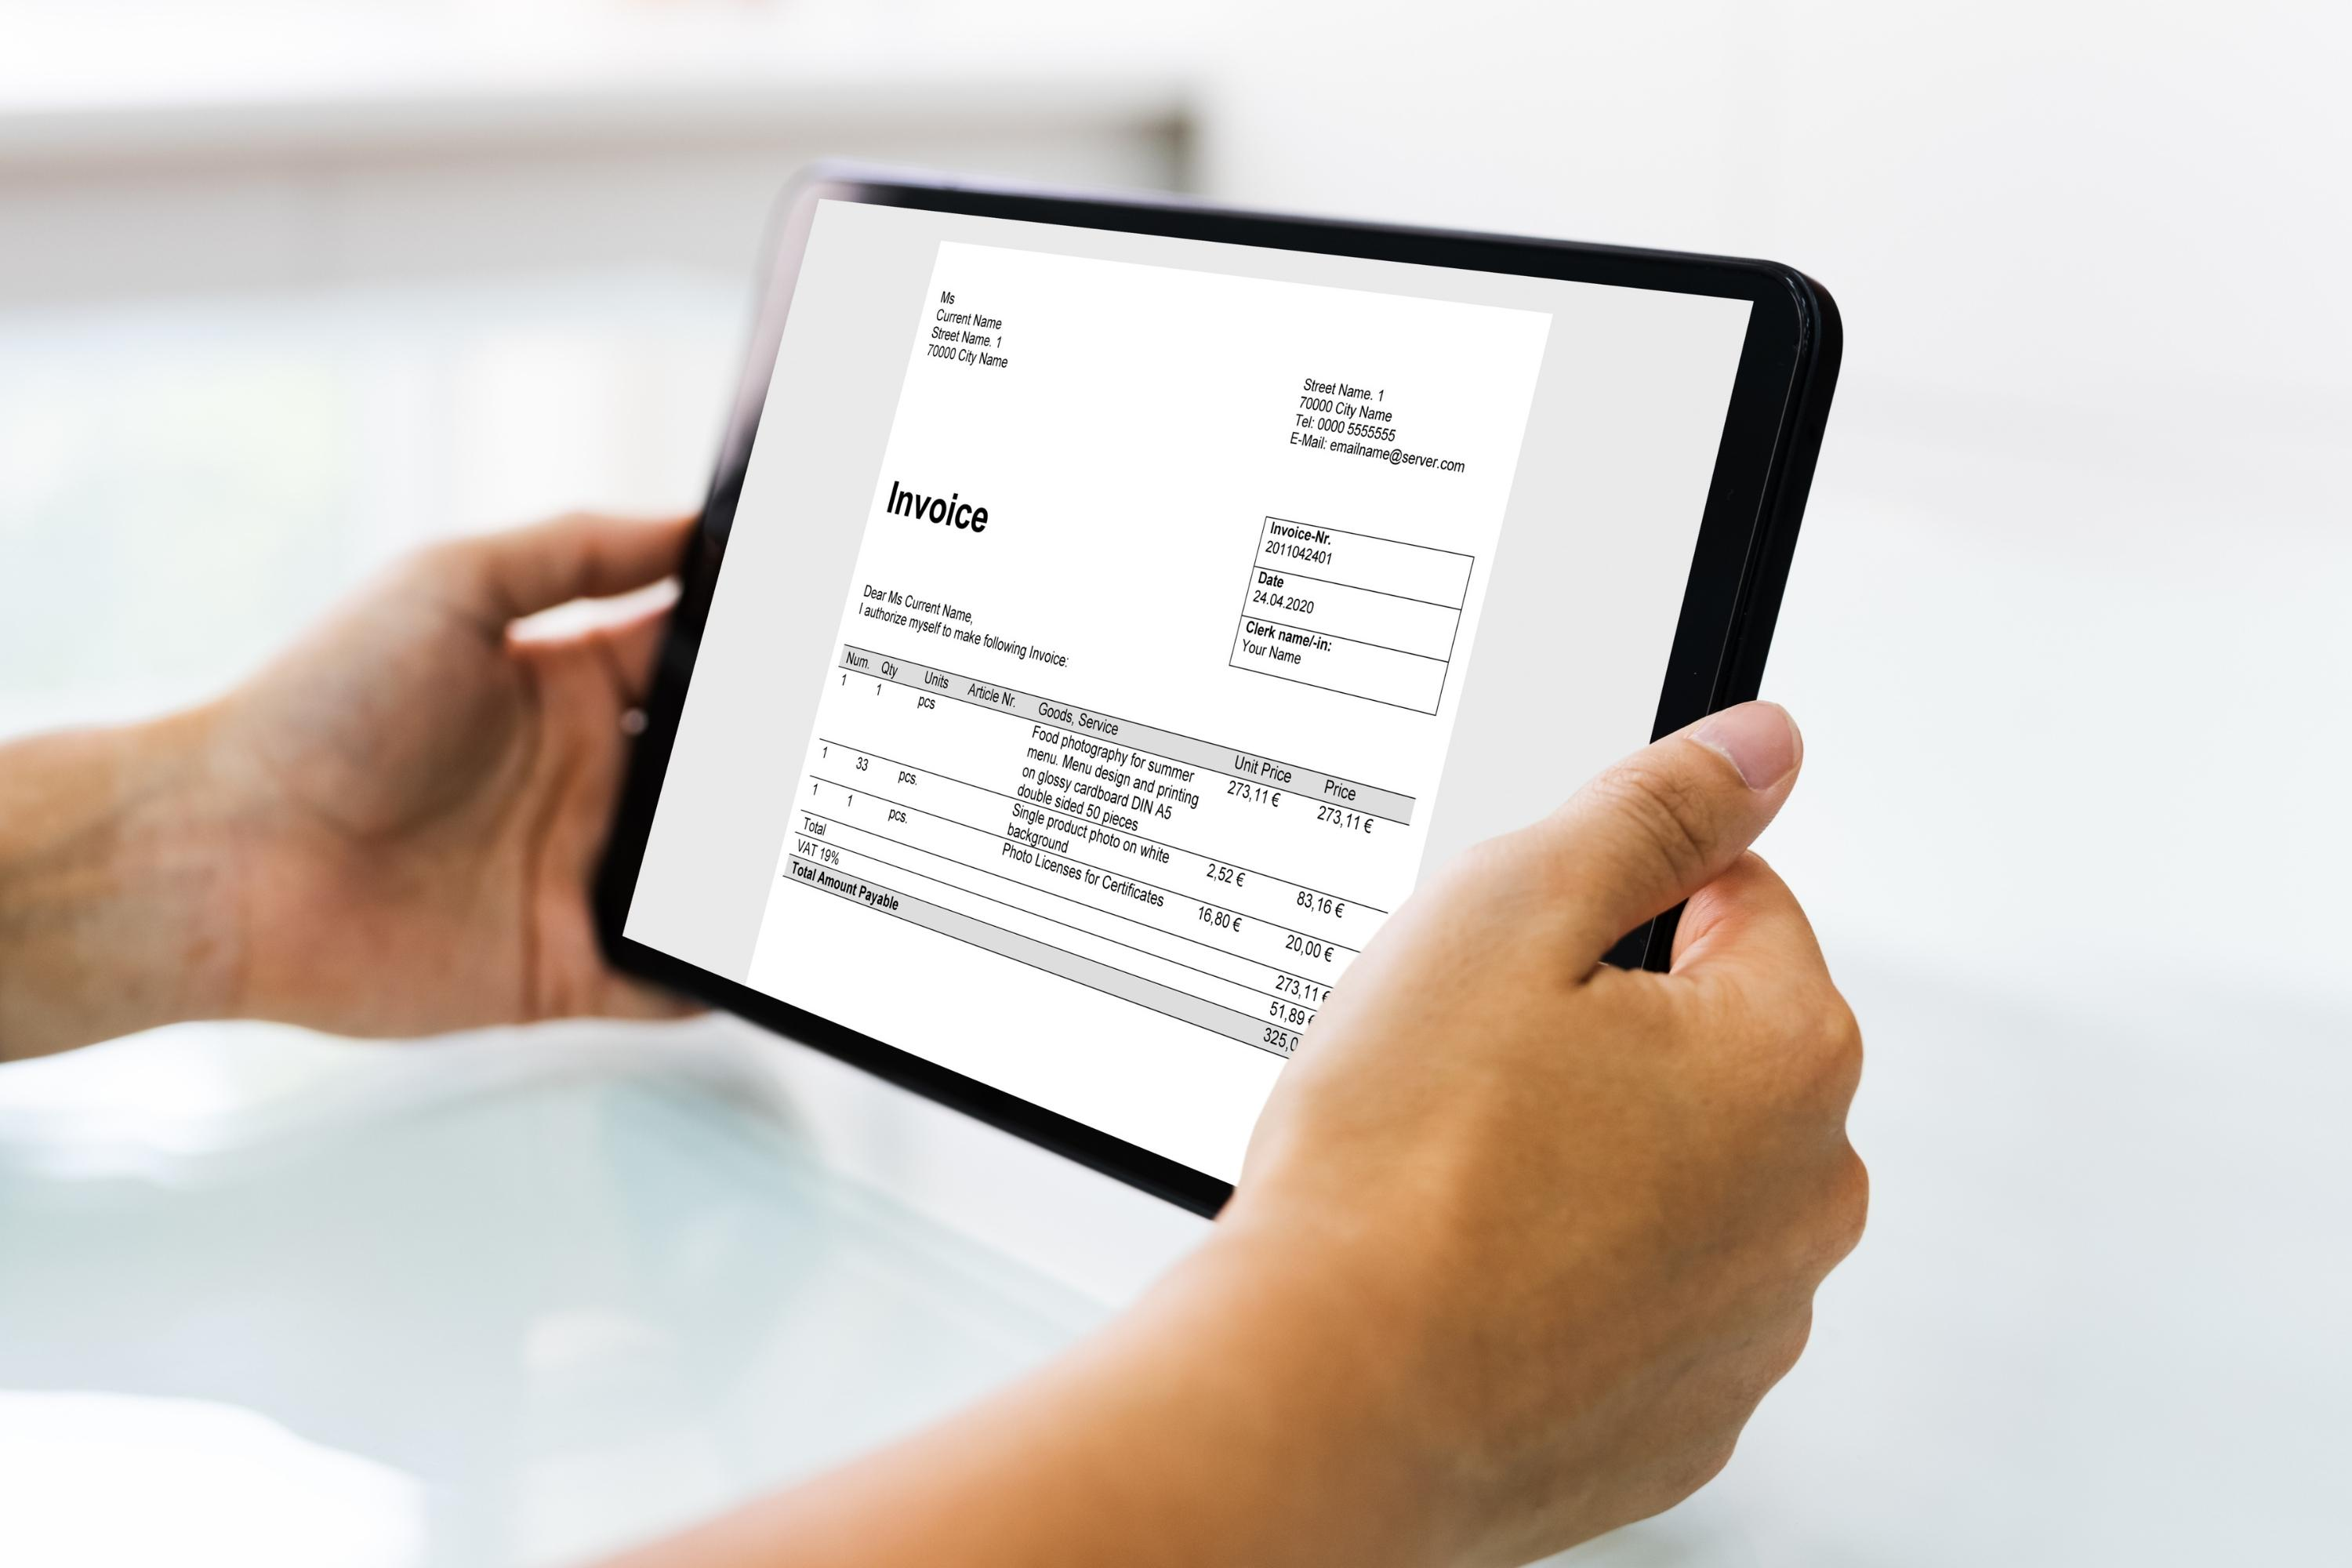 electronic-invoice-and-accounting-software-on-table